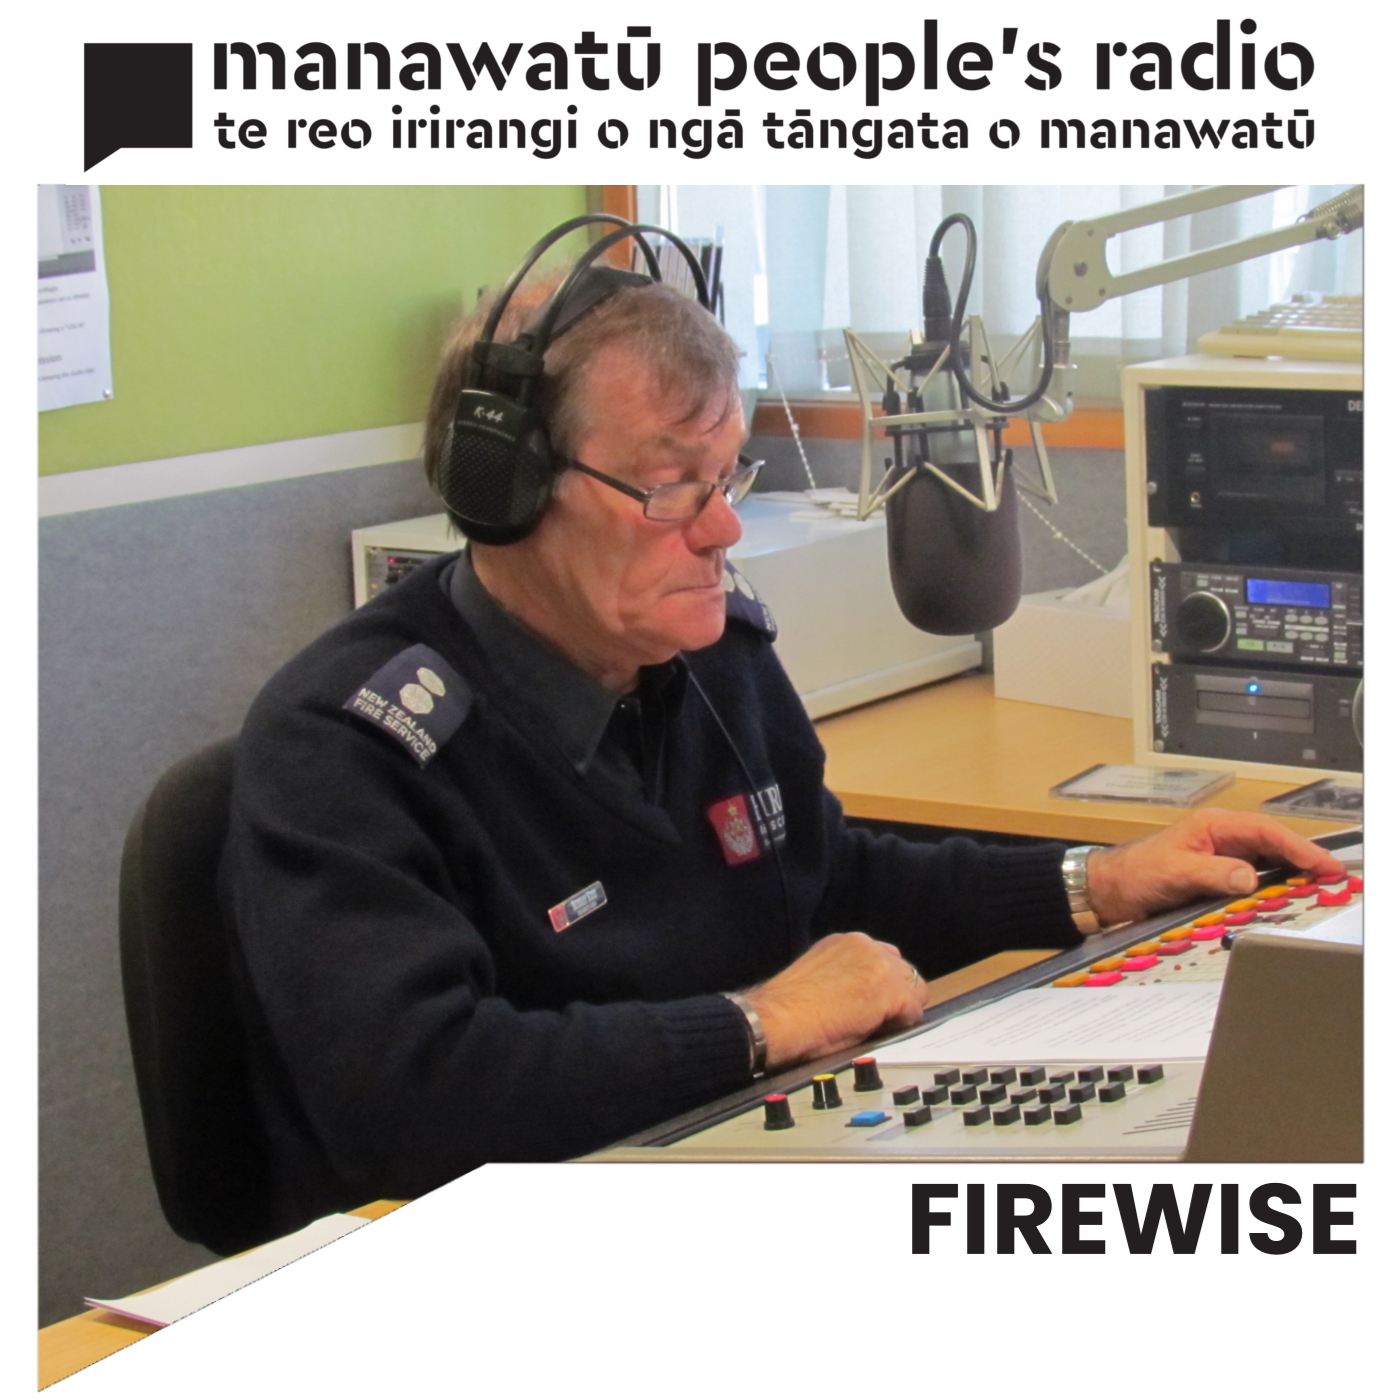 https://cdn.accessradio.org/StationFolder/manawatu/Images/MPRFirewise.png